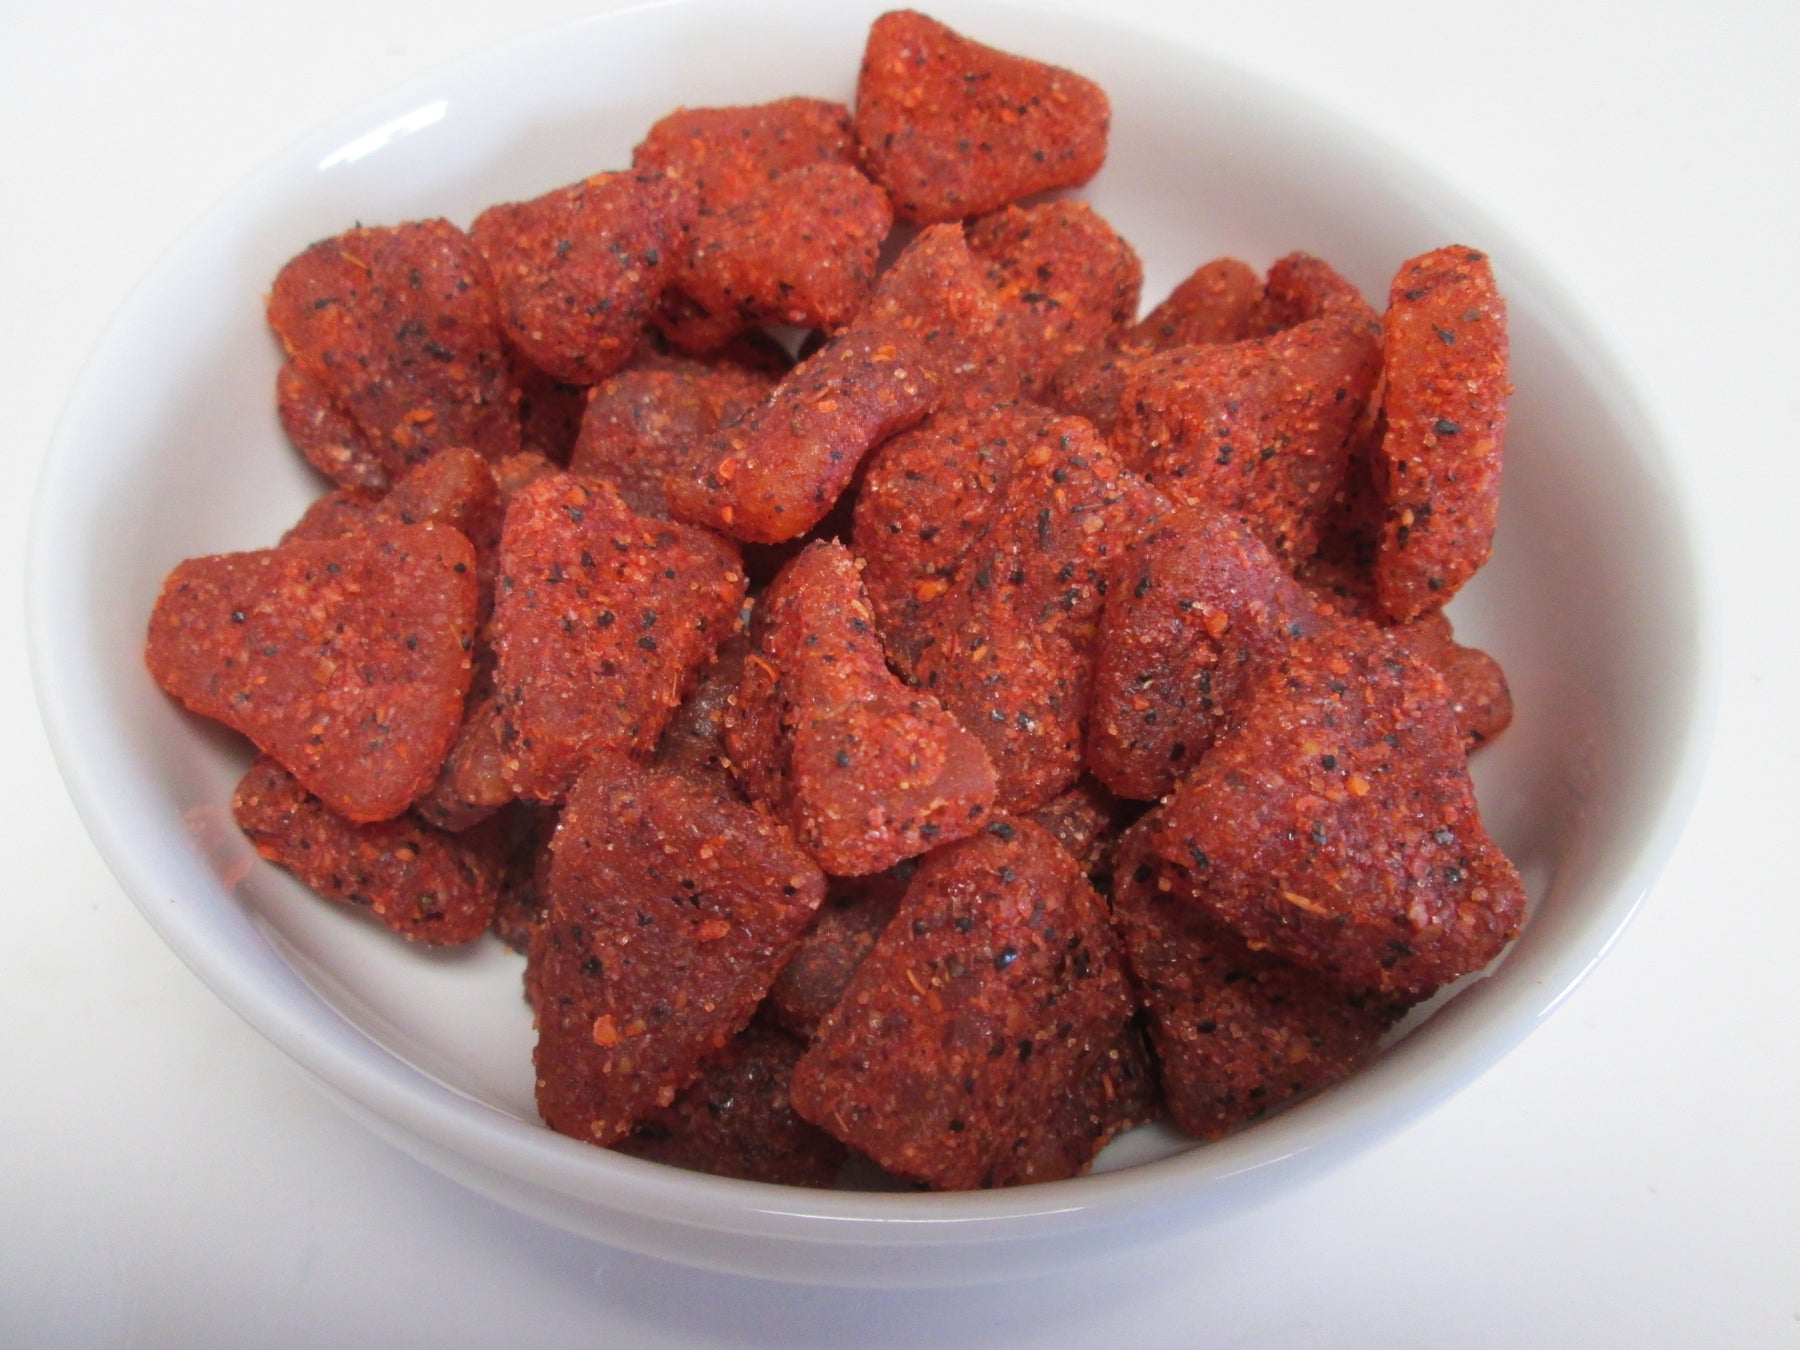 Dried Chili Pineapple Tidbits, 20 lbs / case